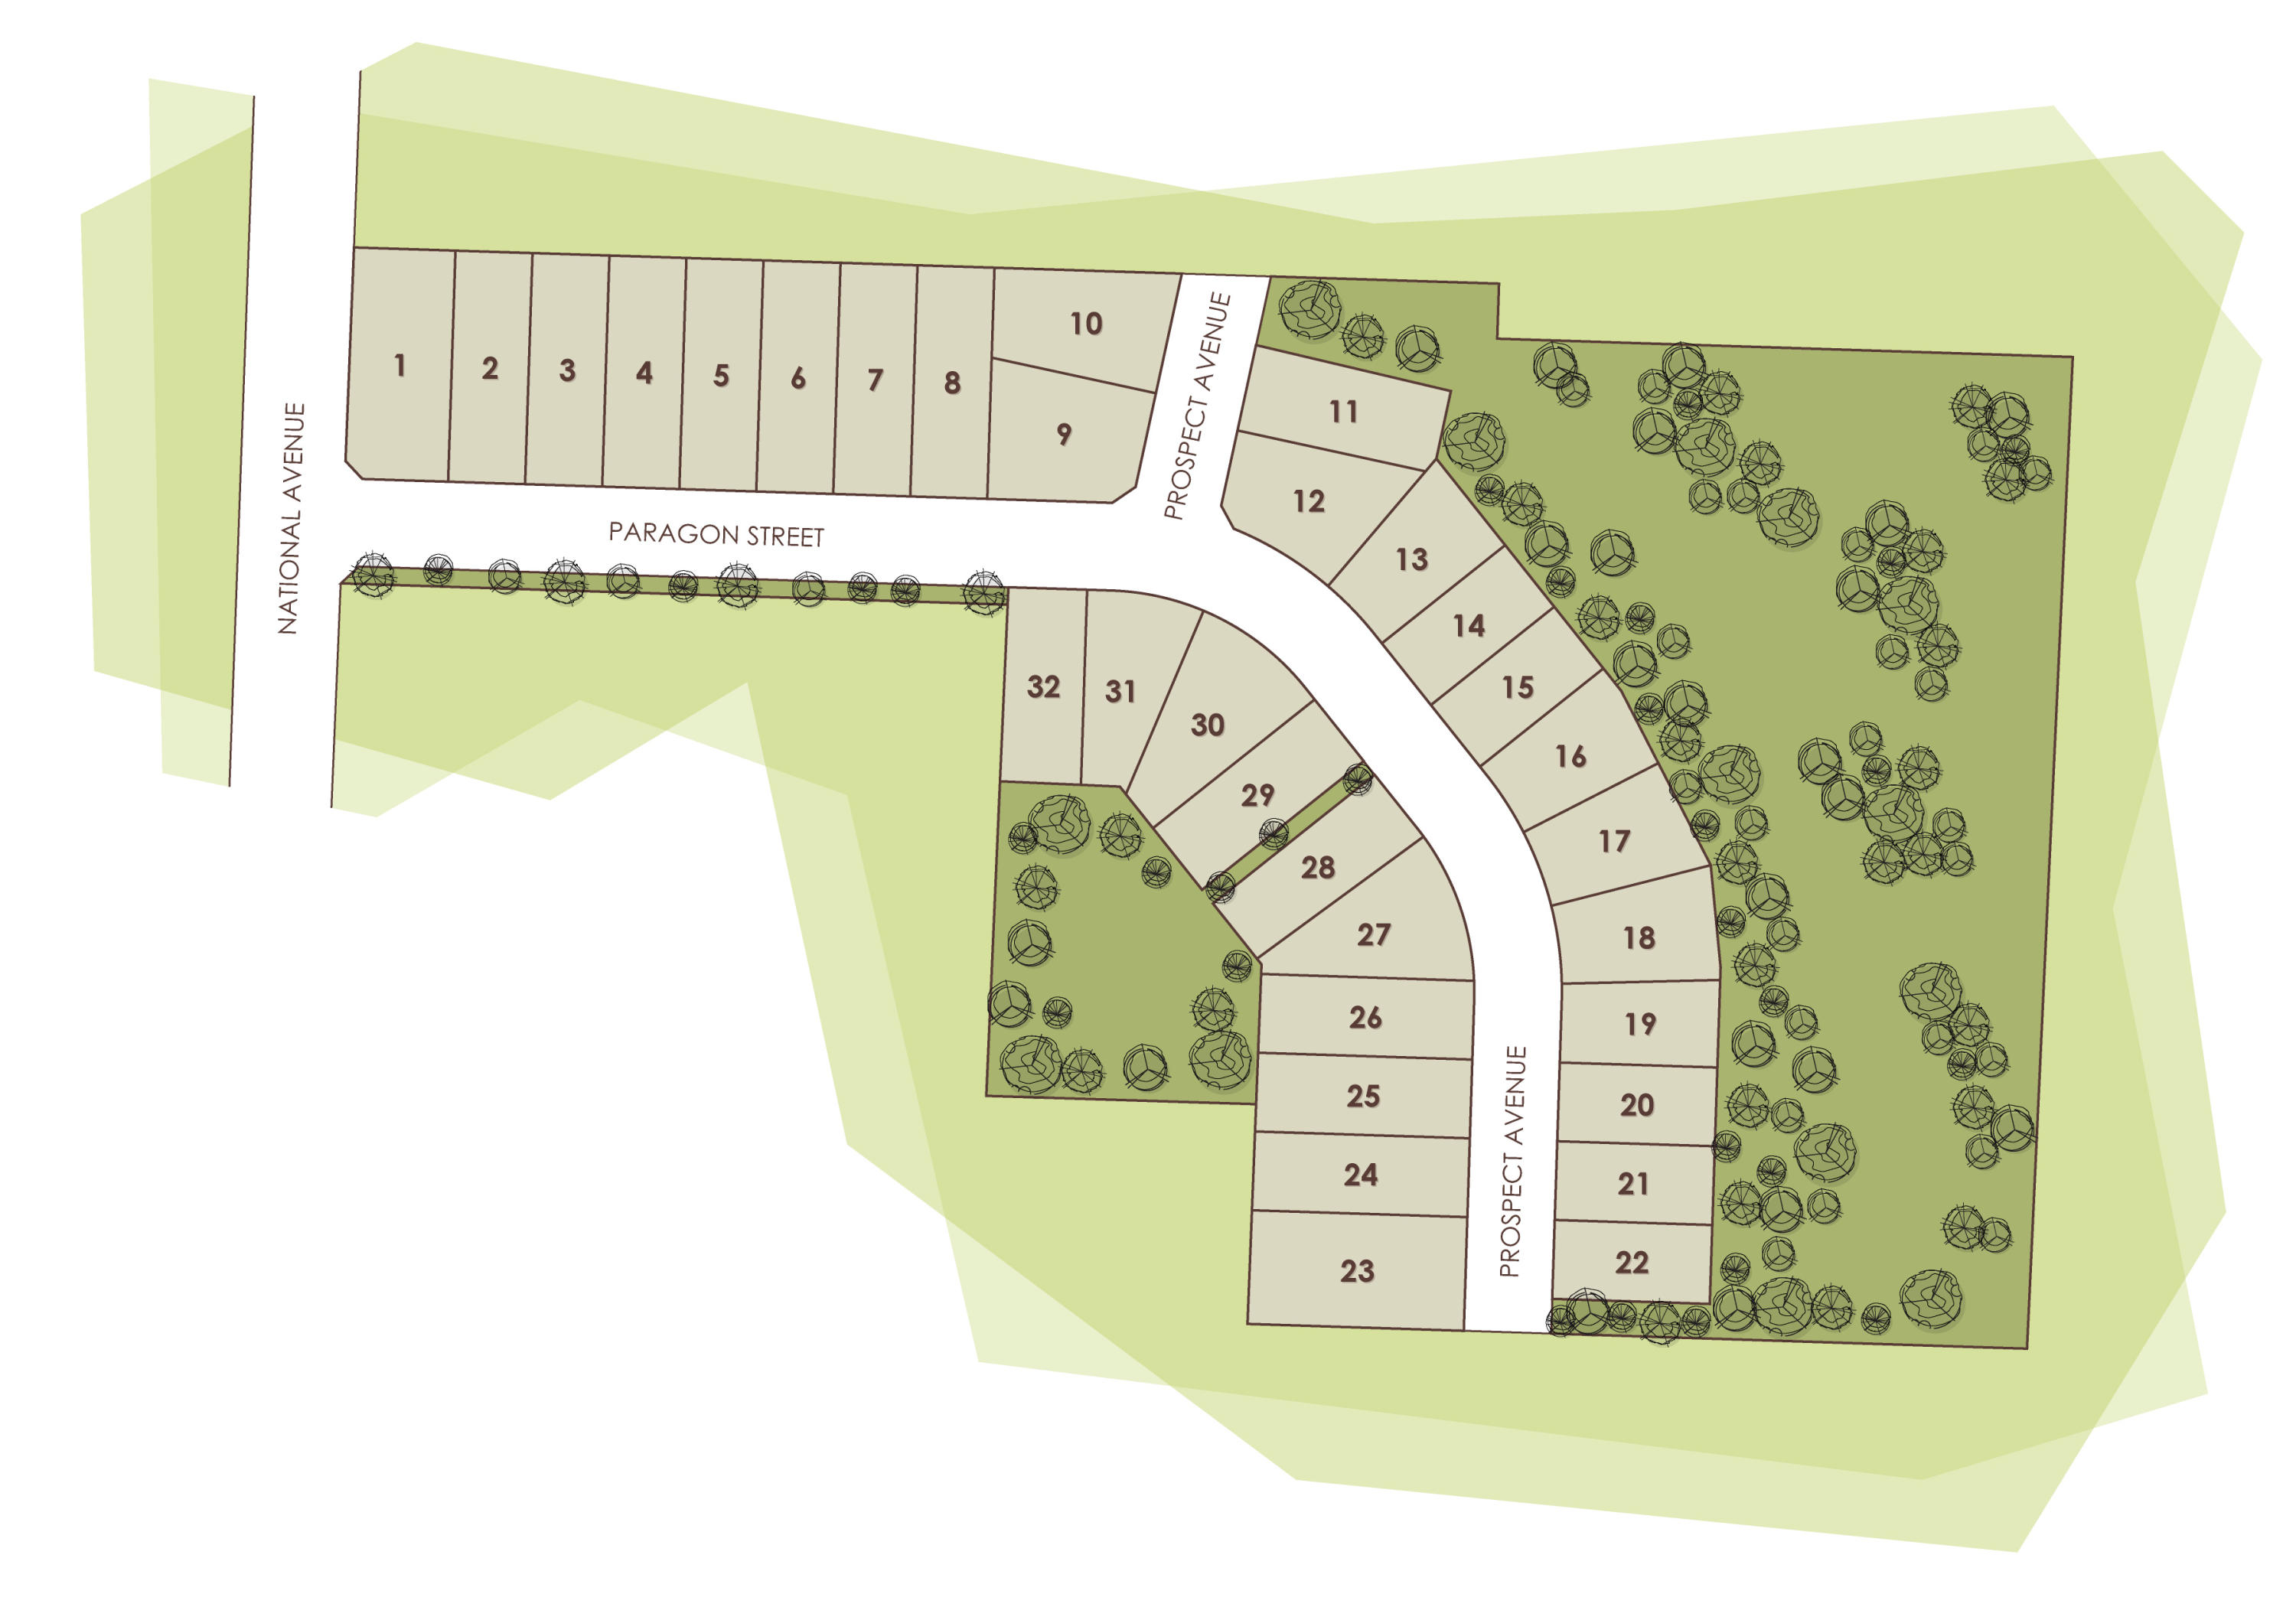 Lot 29-30 Paragon Court Springfield, MO 65803